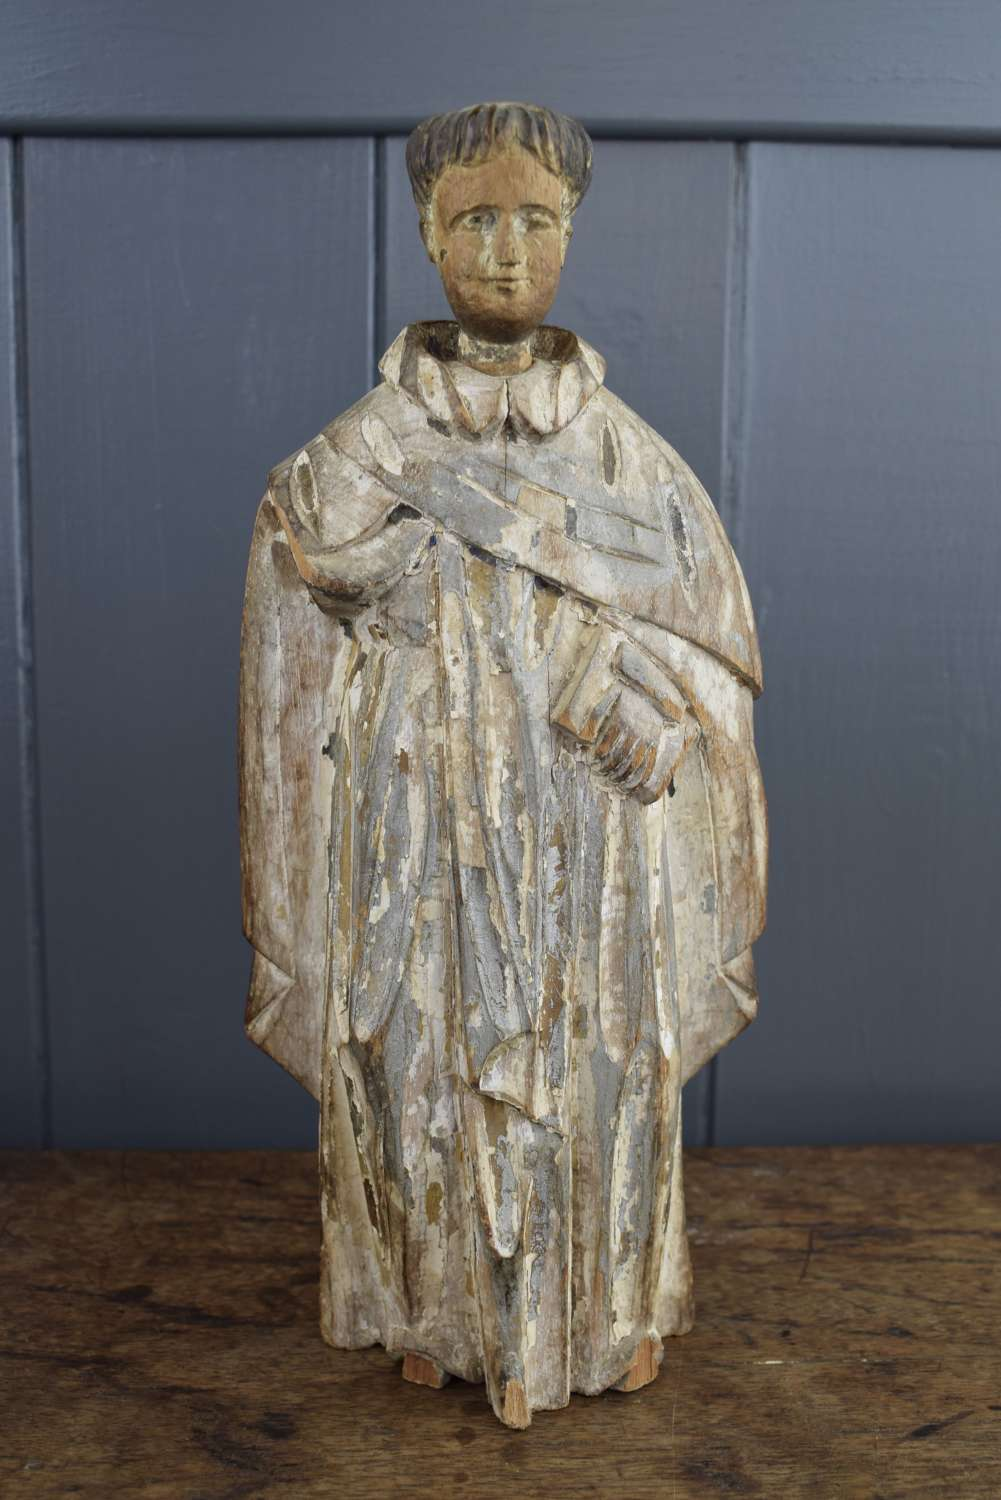 Spanish Colonial Religious Carving of a Monk